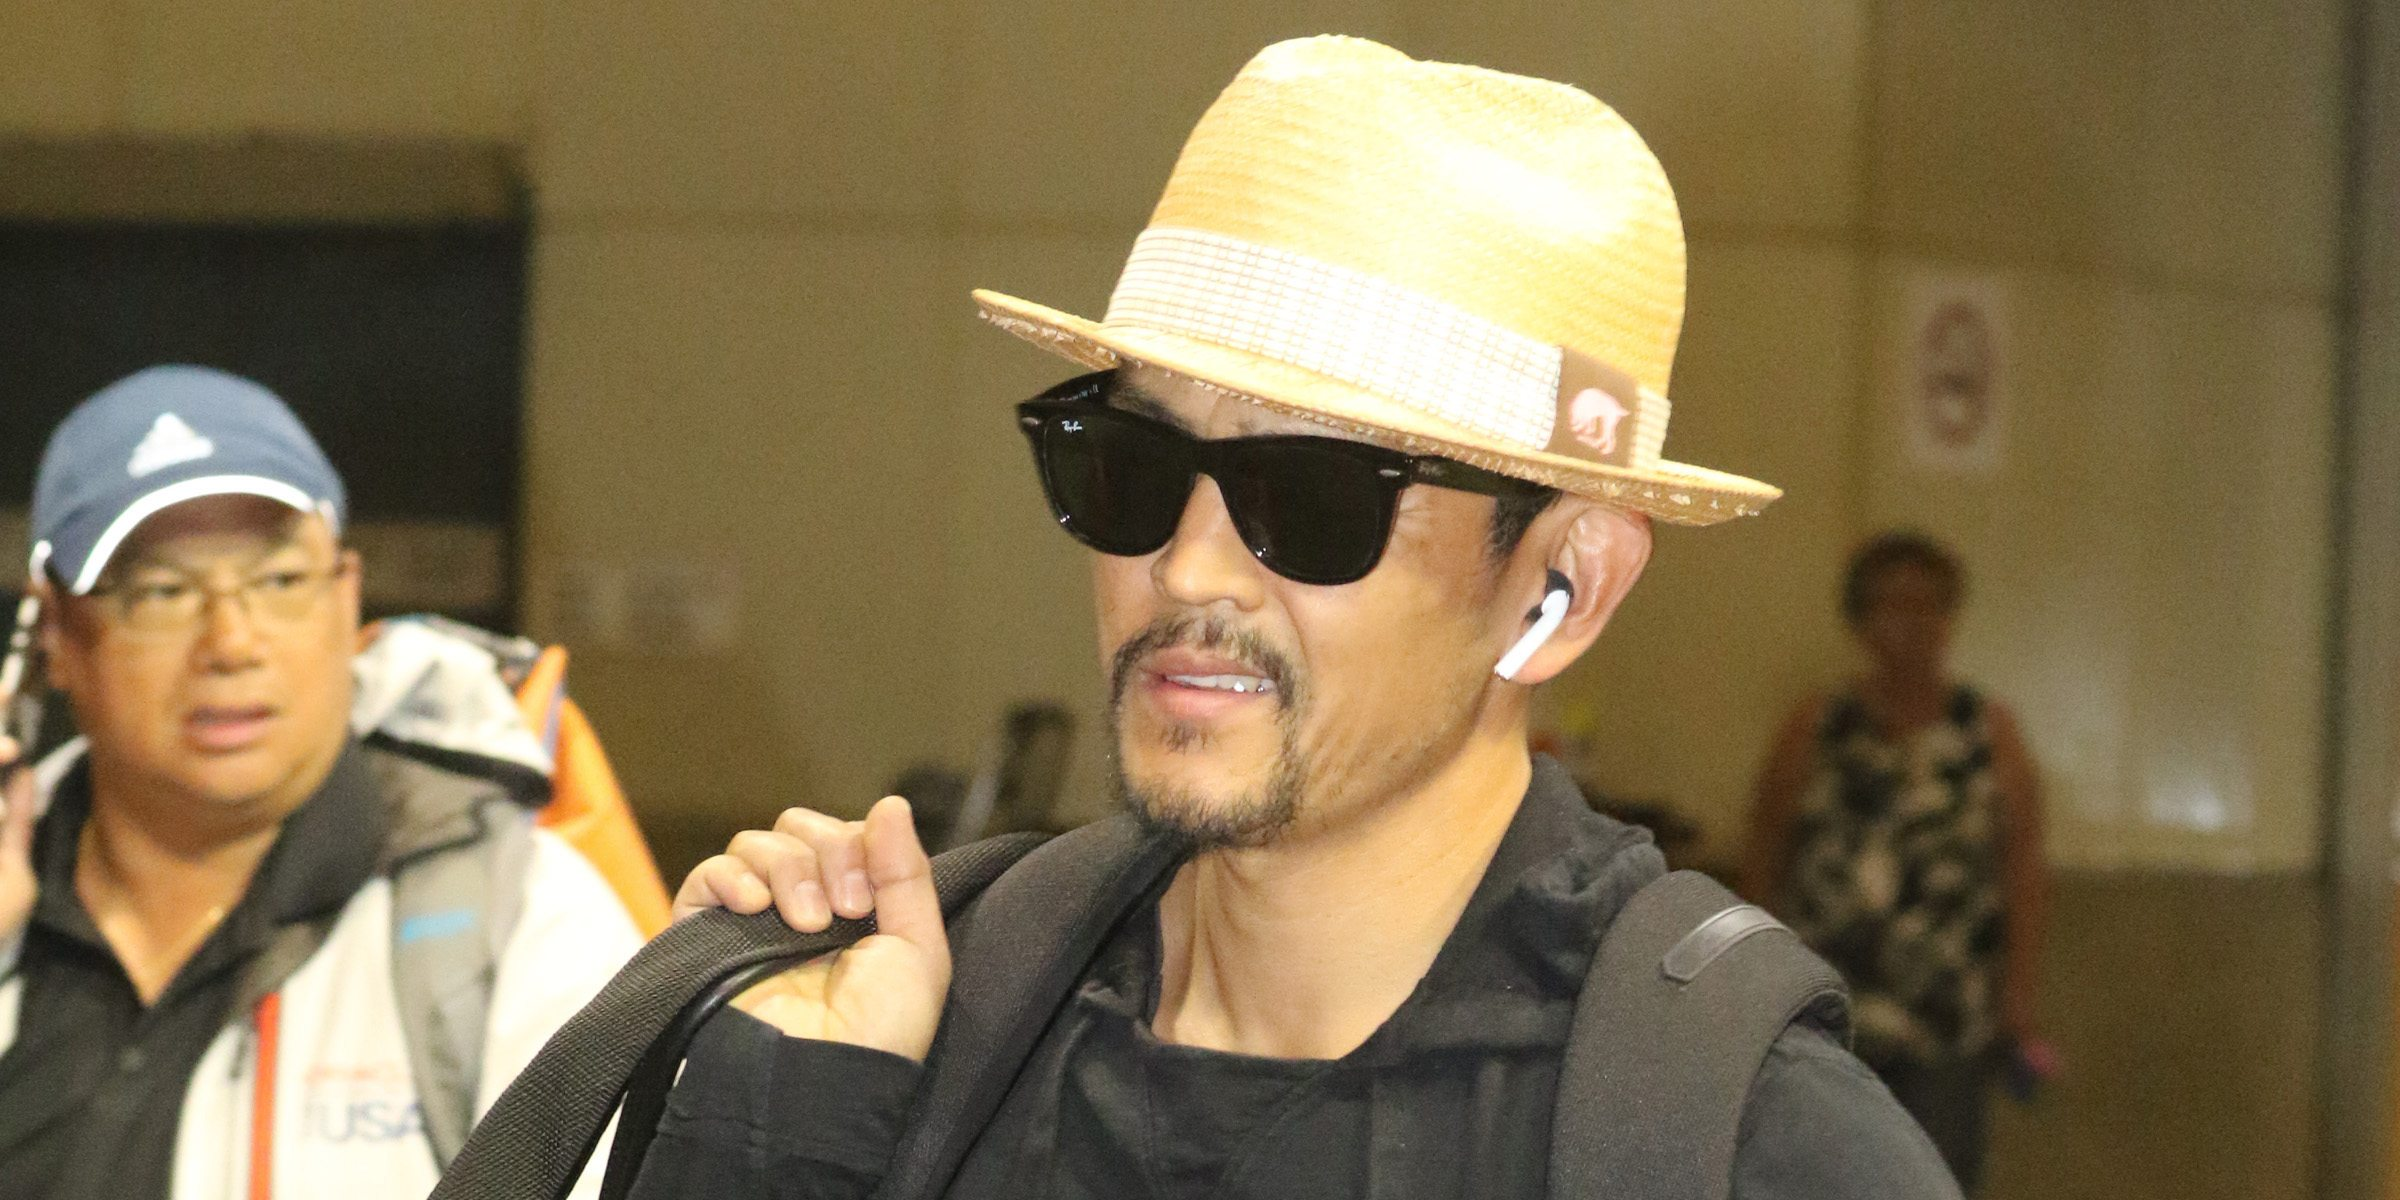 John Cho arrives in Vancouver to film The Exorcist season 2 (PHOTOS)